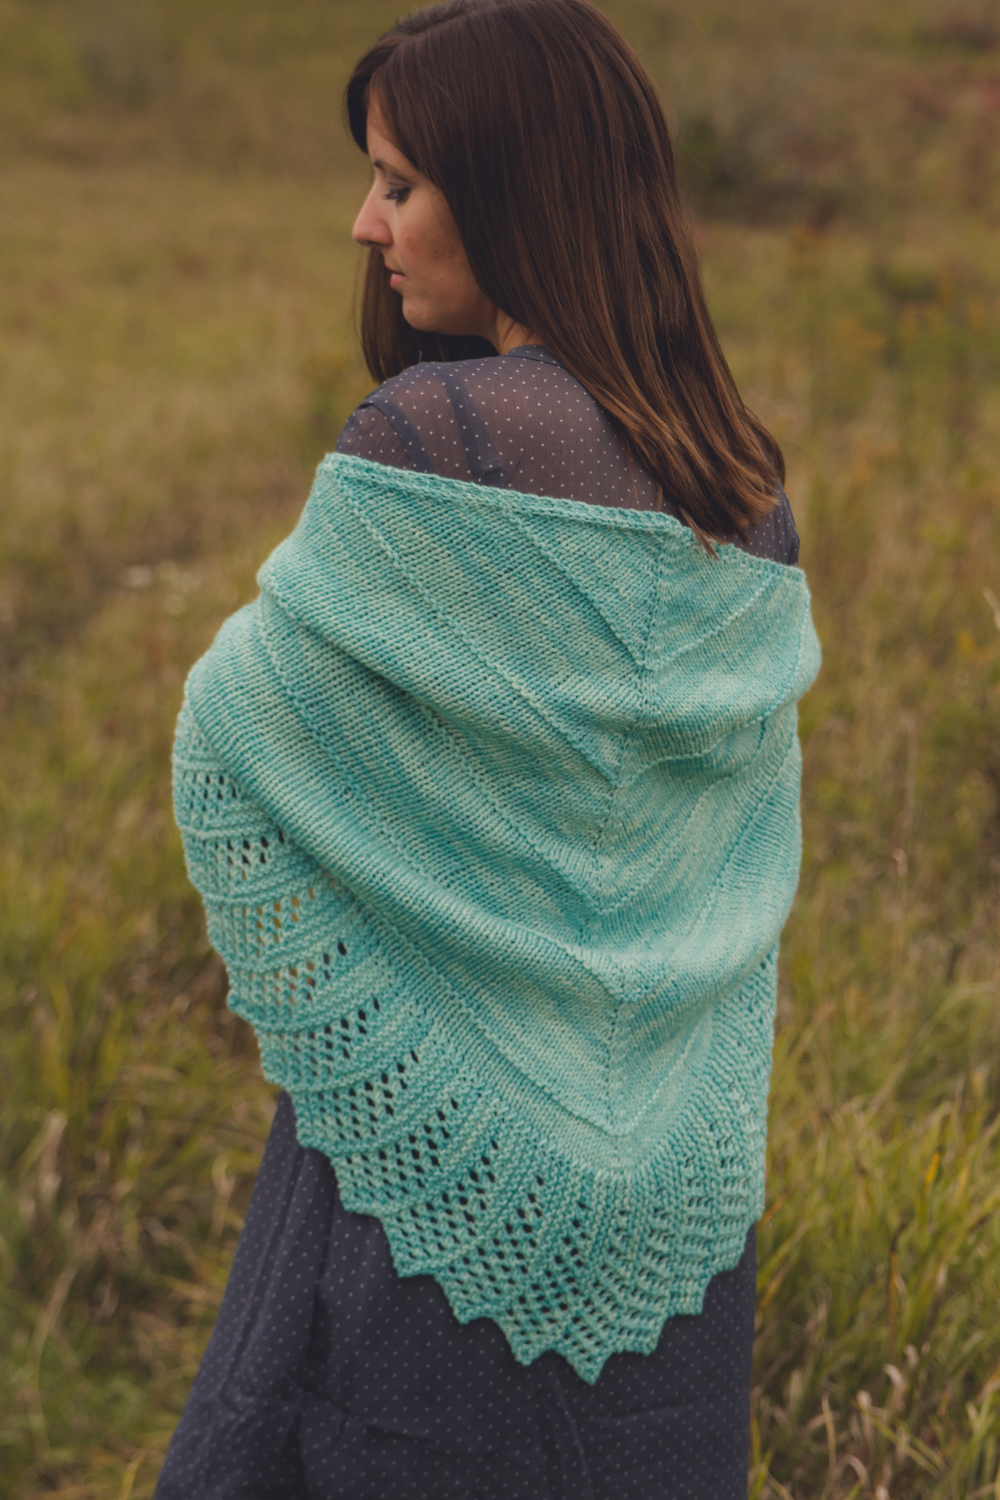 Wide Open Spaces, in Nova Worsted, Glacier Araucana colorway